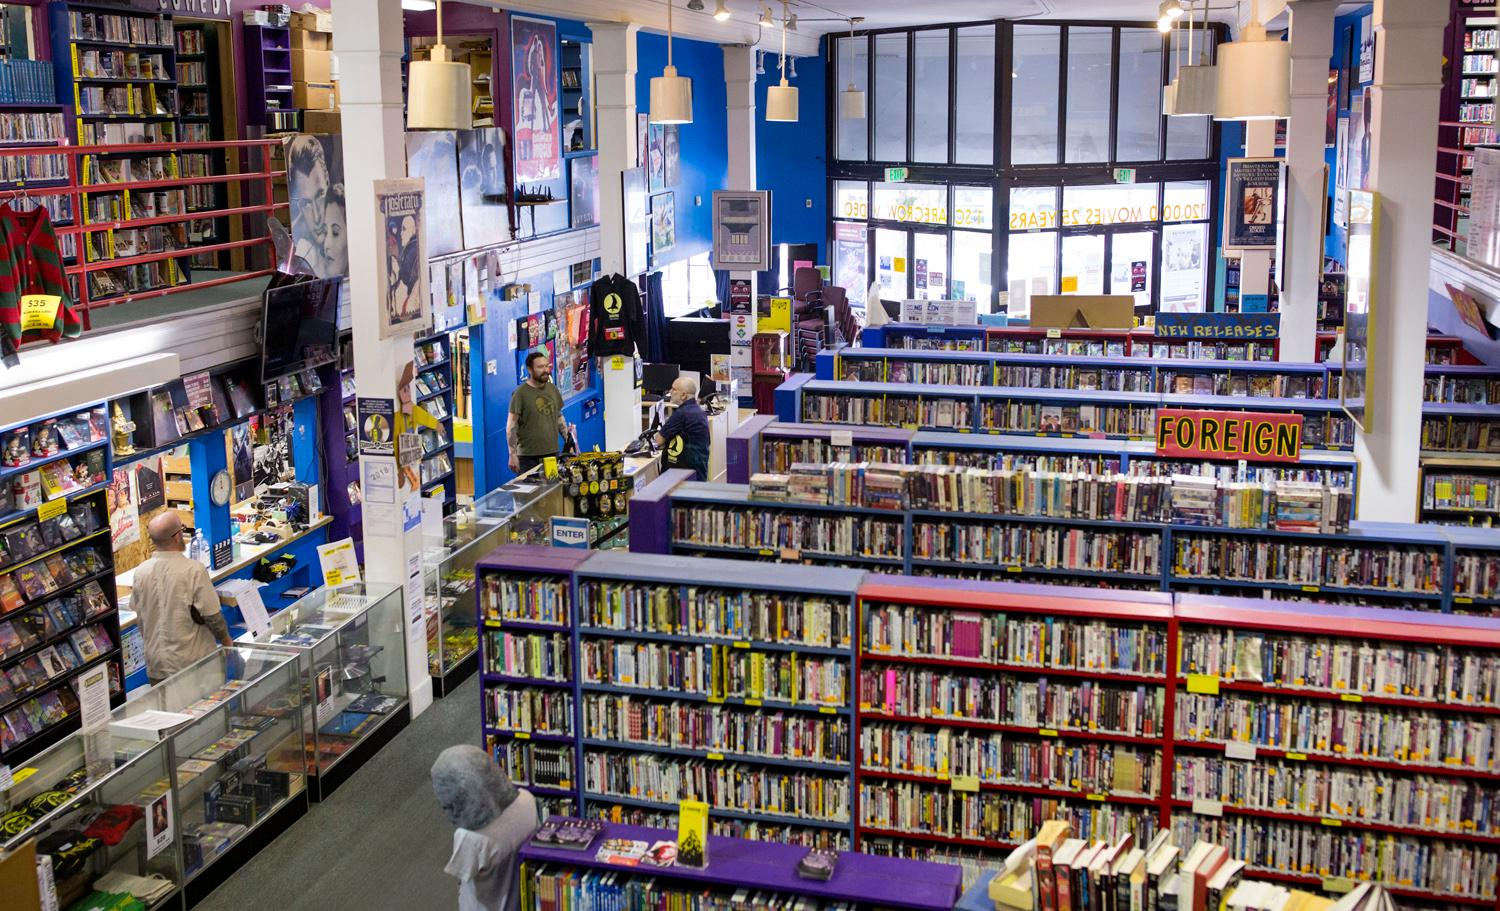 Scarecrow Video, the film rental store that has been serving Seattle and is home to over 131,000 titles, turns 30 this year. In 2014, the collection had grown to become such a significant archive that a non-profit was formed. The store continues to grow at a rate of 3,000-5,000 titles each year, representing 129 countries and over 126 languages. (Sy Bean / Seattle Refined)